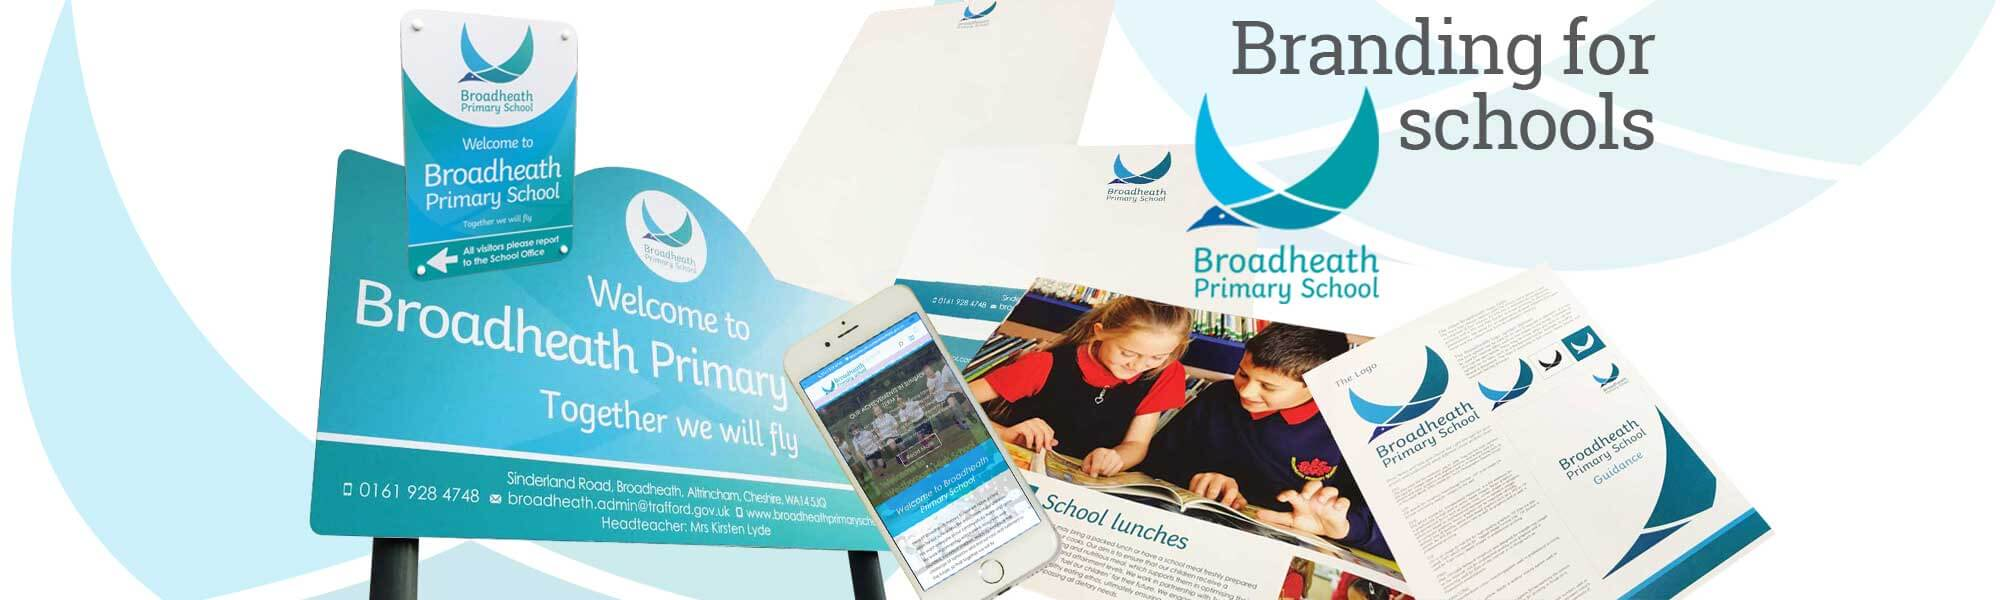 BRANDING_SLIDER_Broadheath